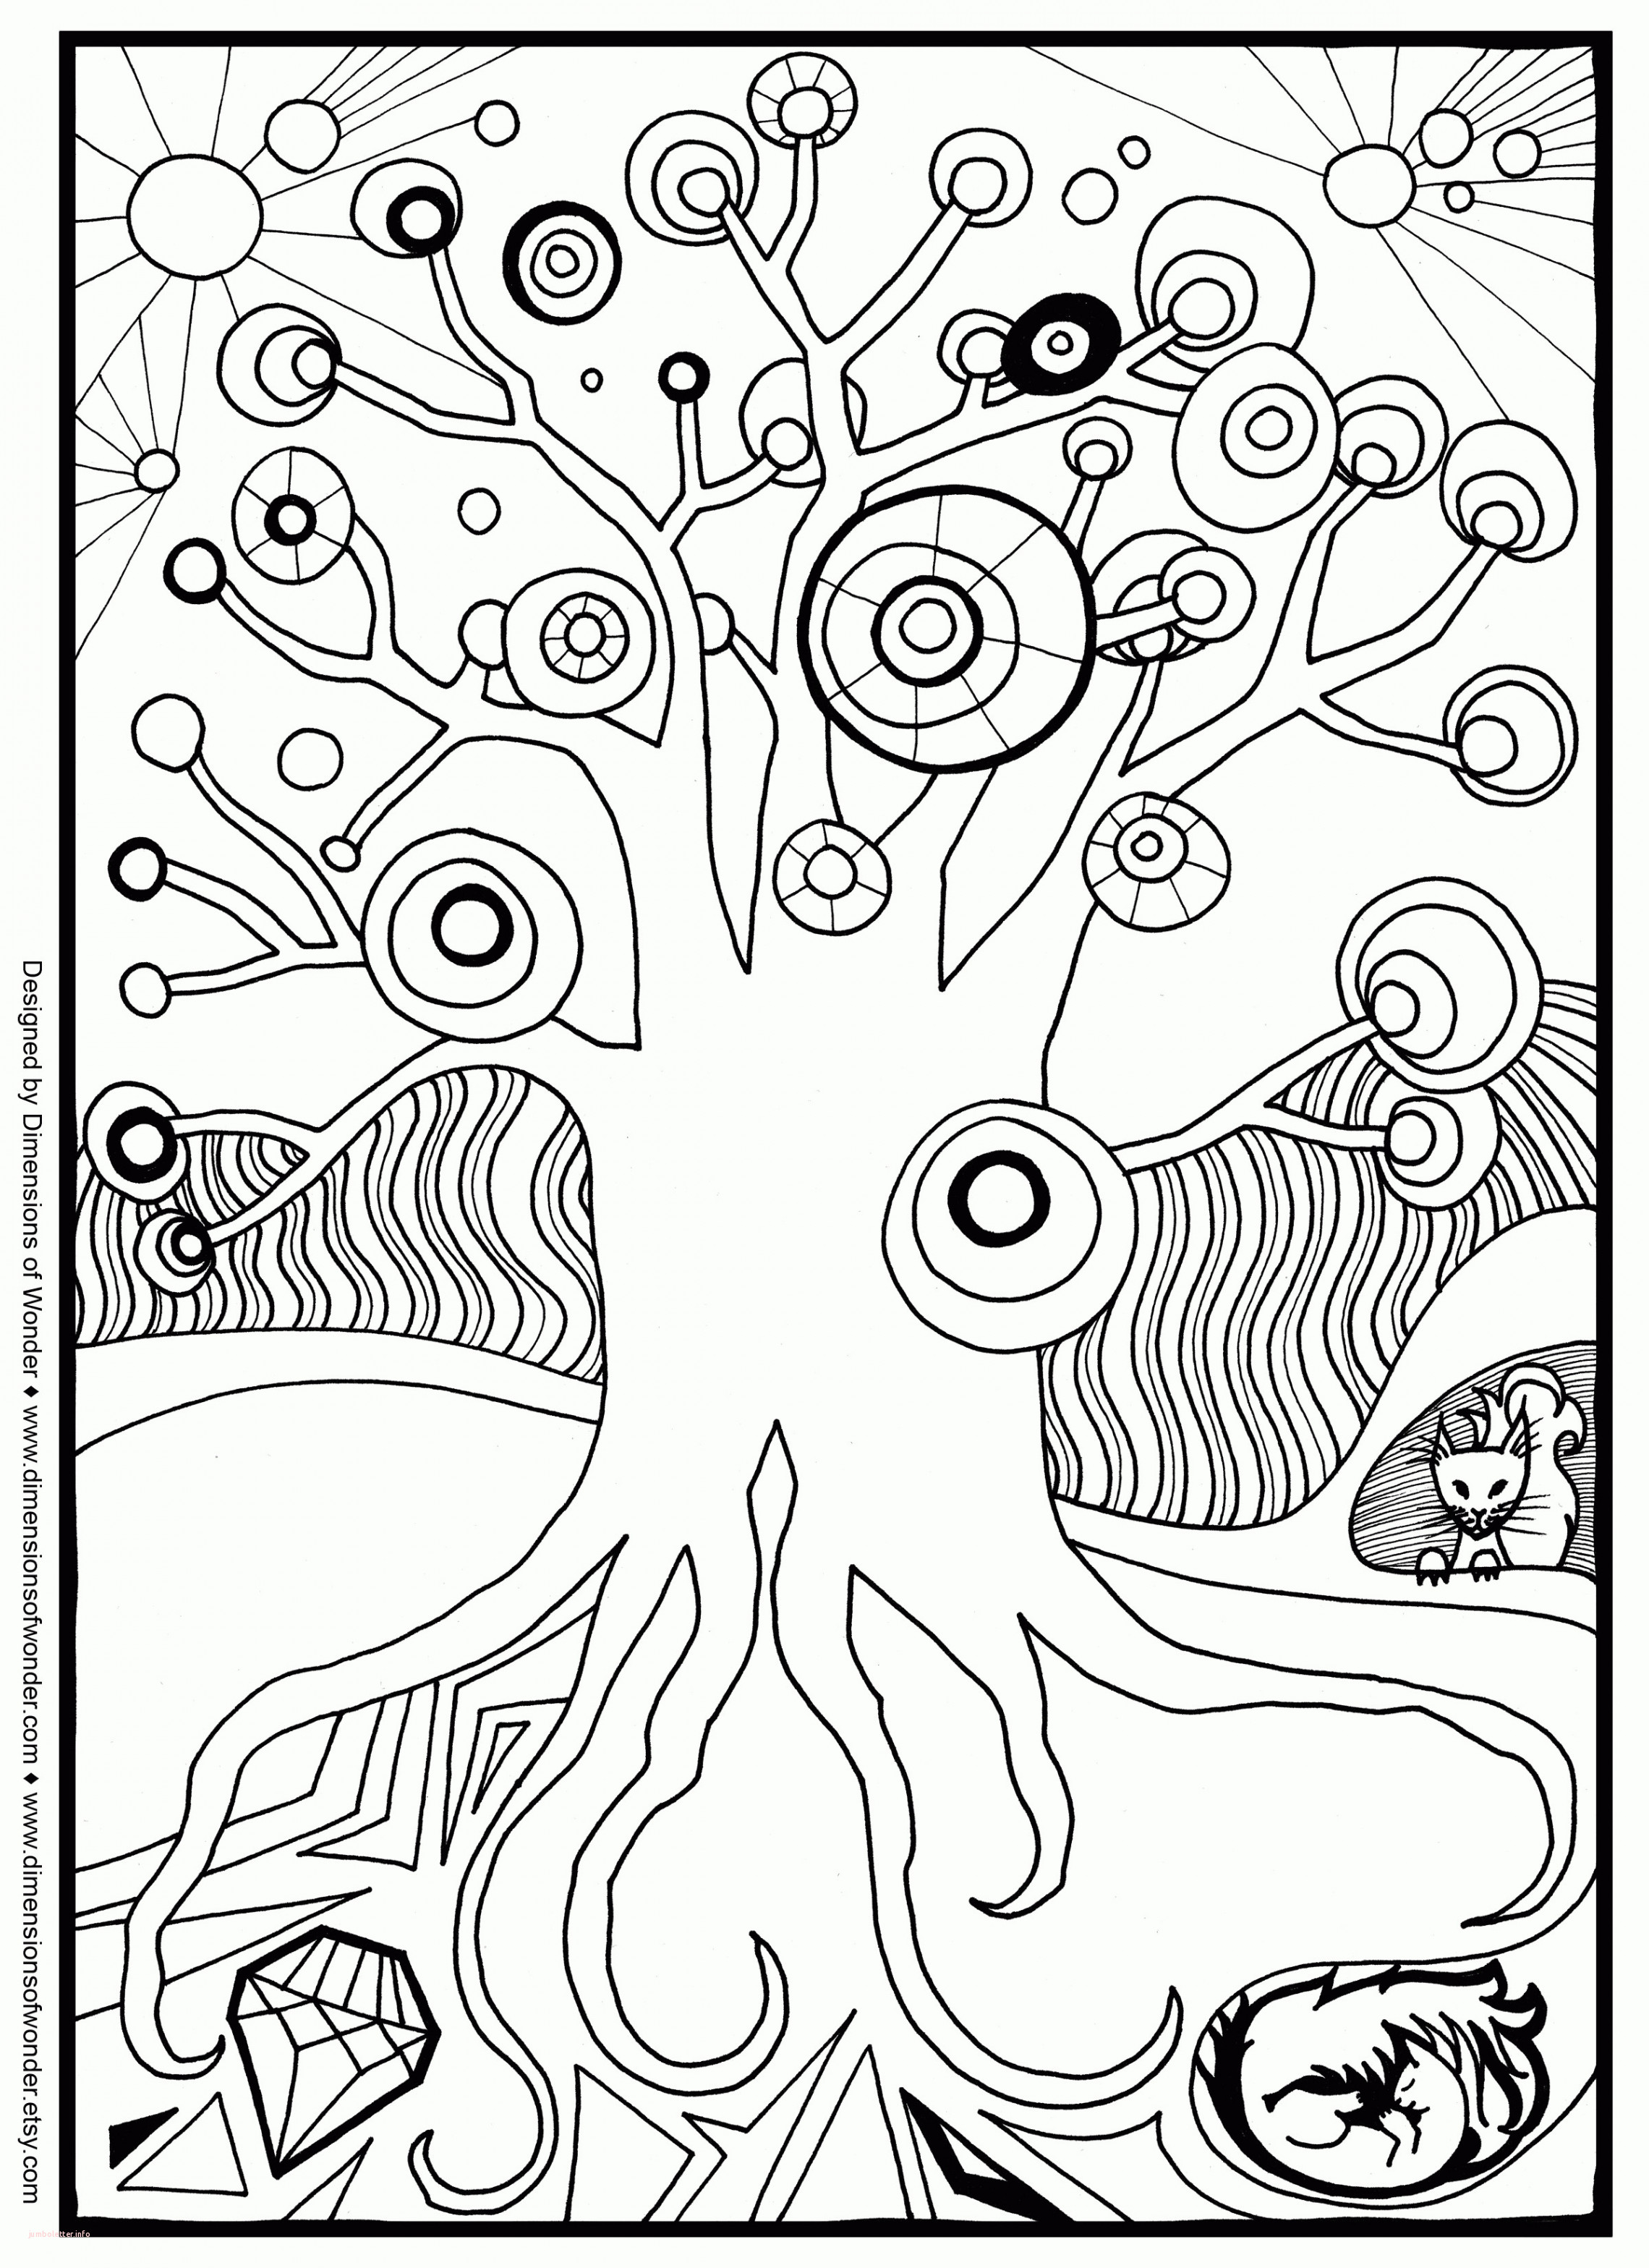 Christmas Colouring In Pages Twinkl With Coloring Sheets For Middle School Students 1000 Free